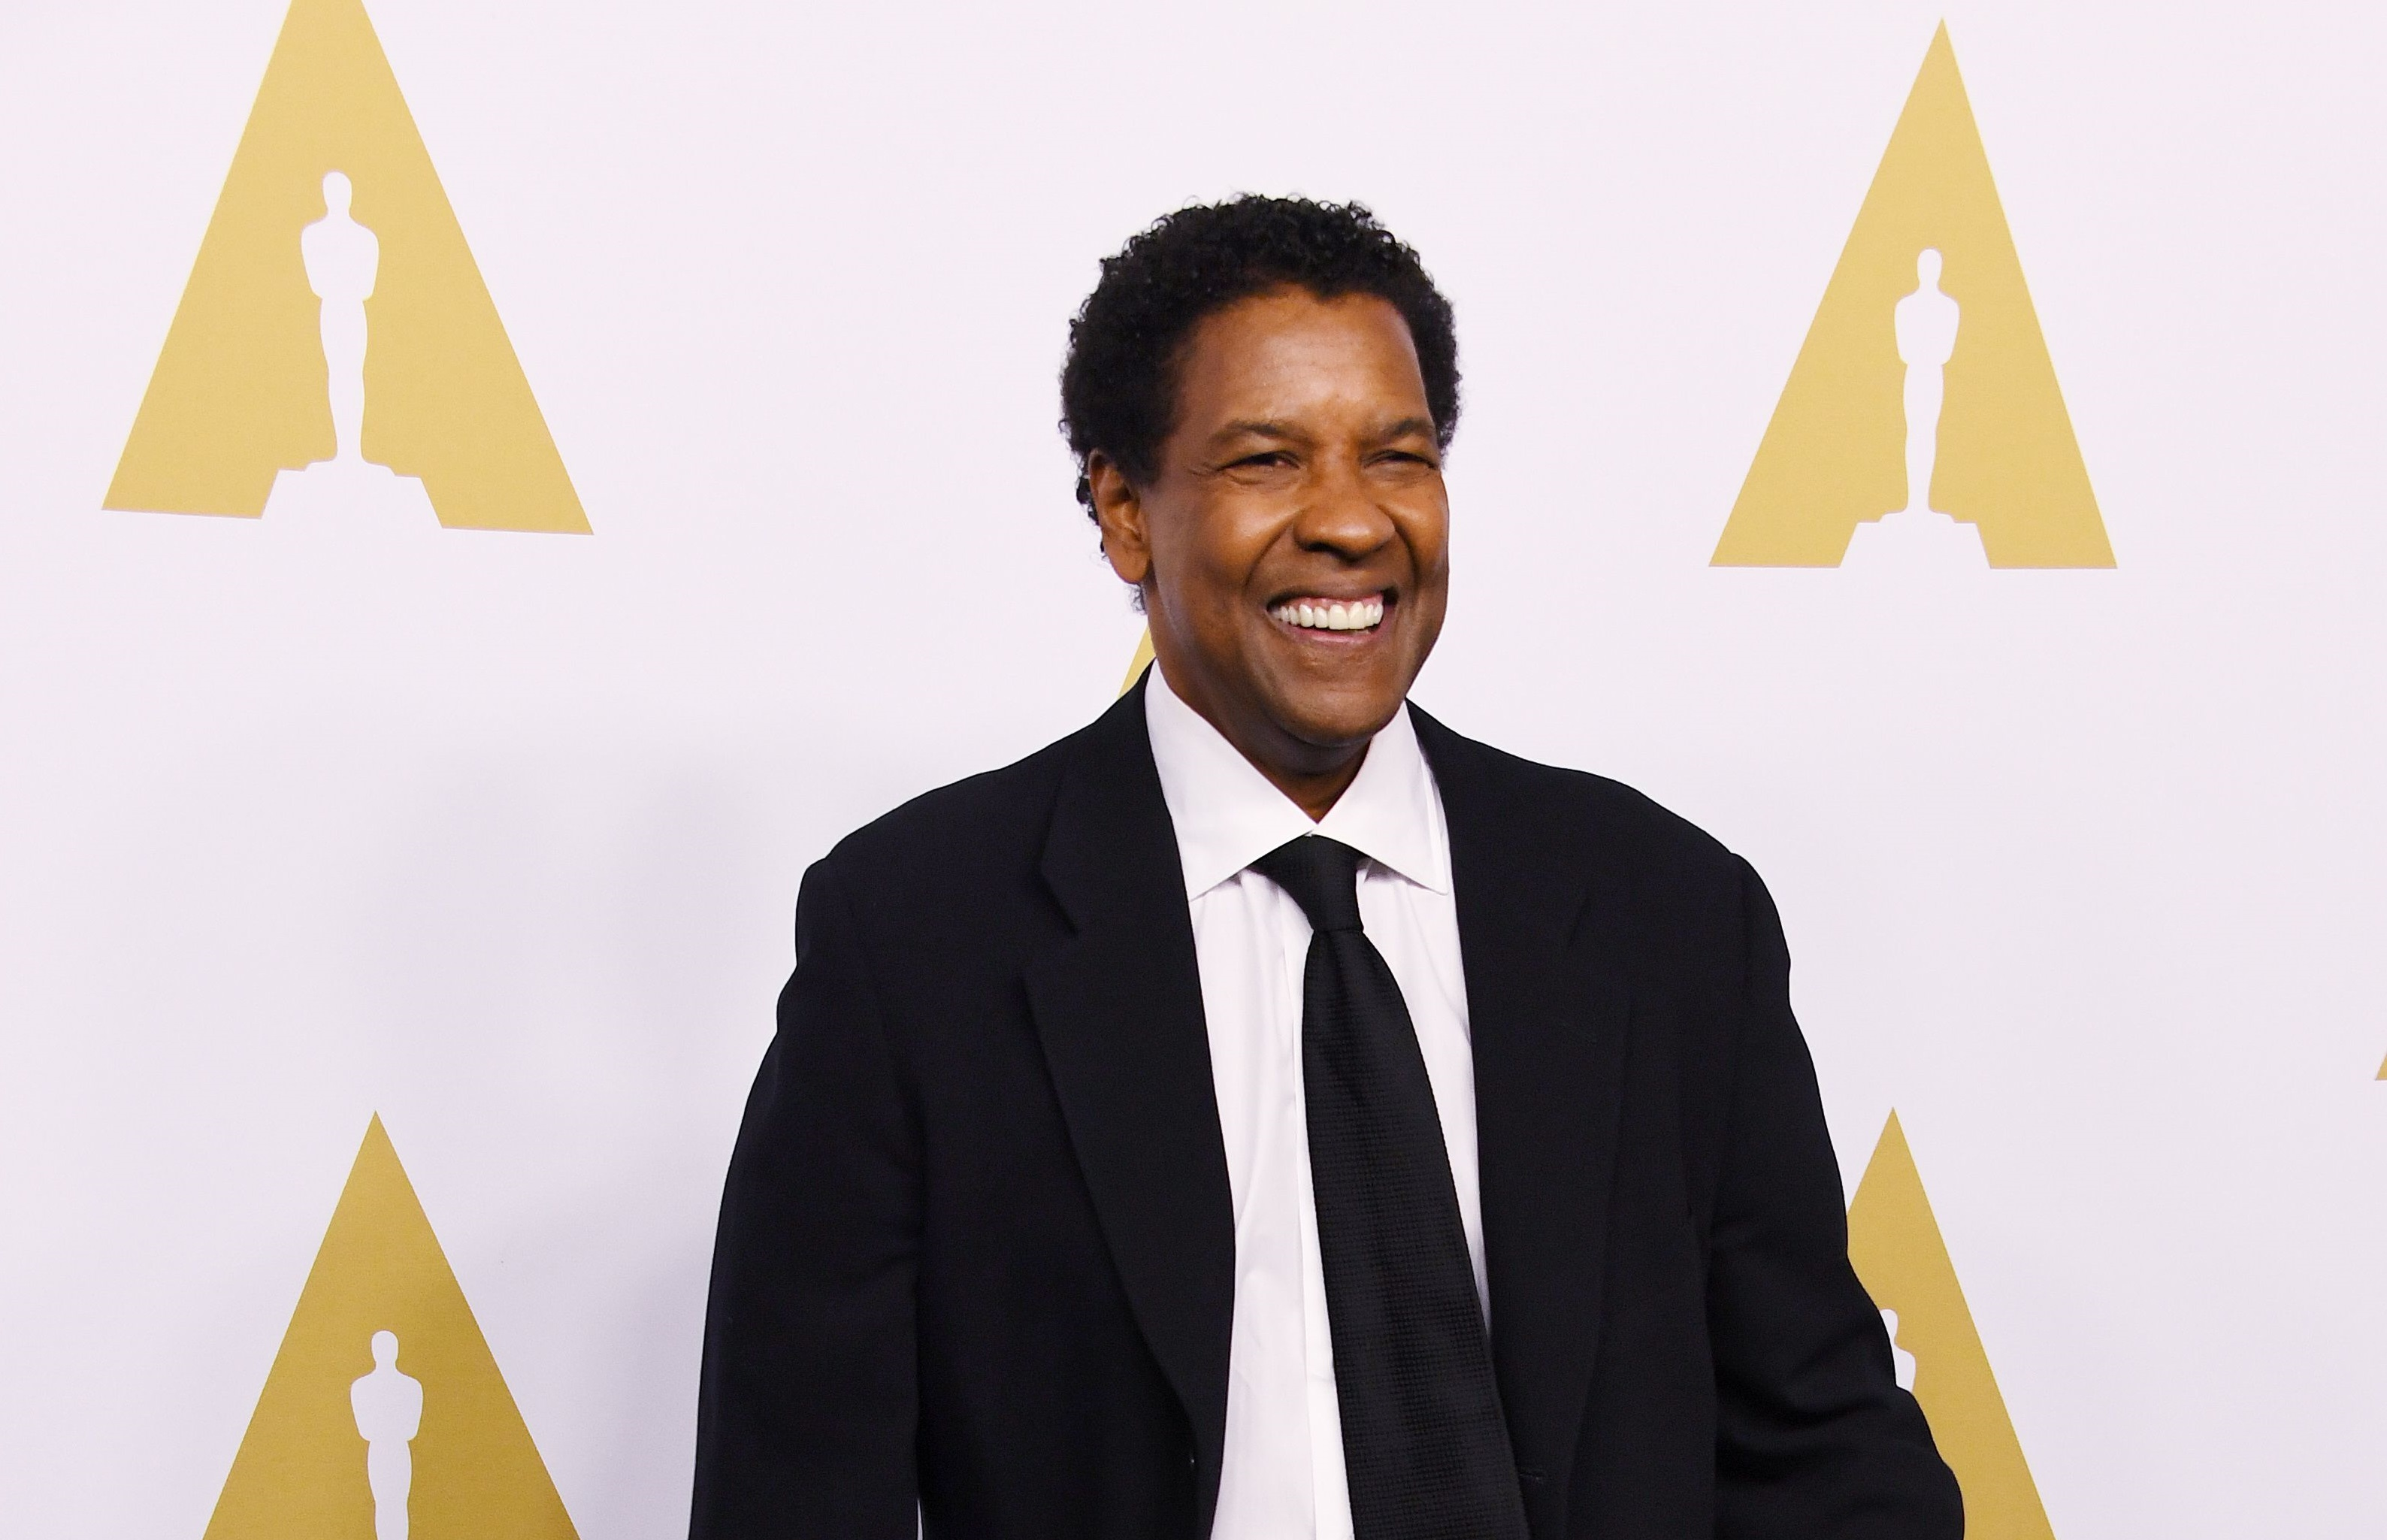 Denzel Washington called 'good Samaritan' after coming to aid of distressed man